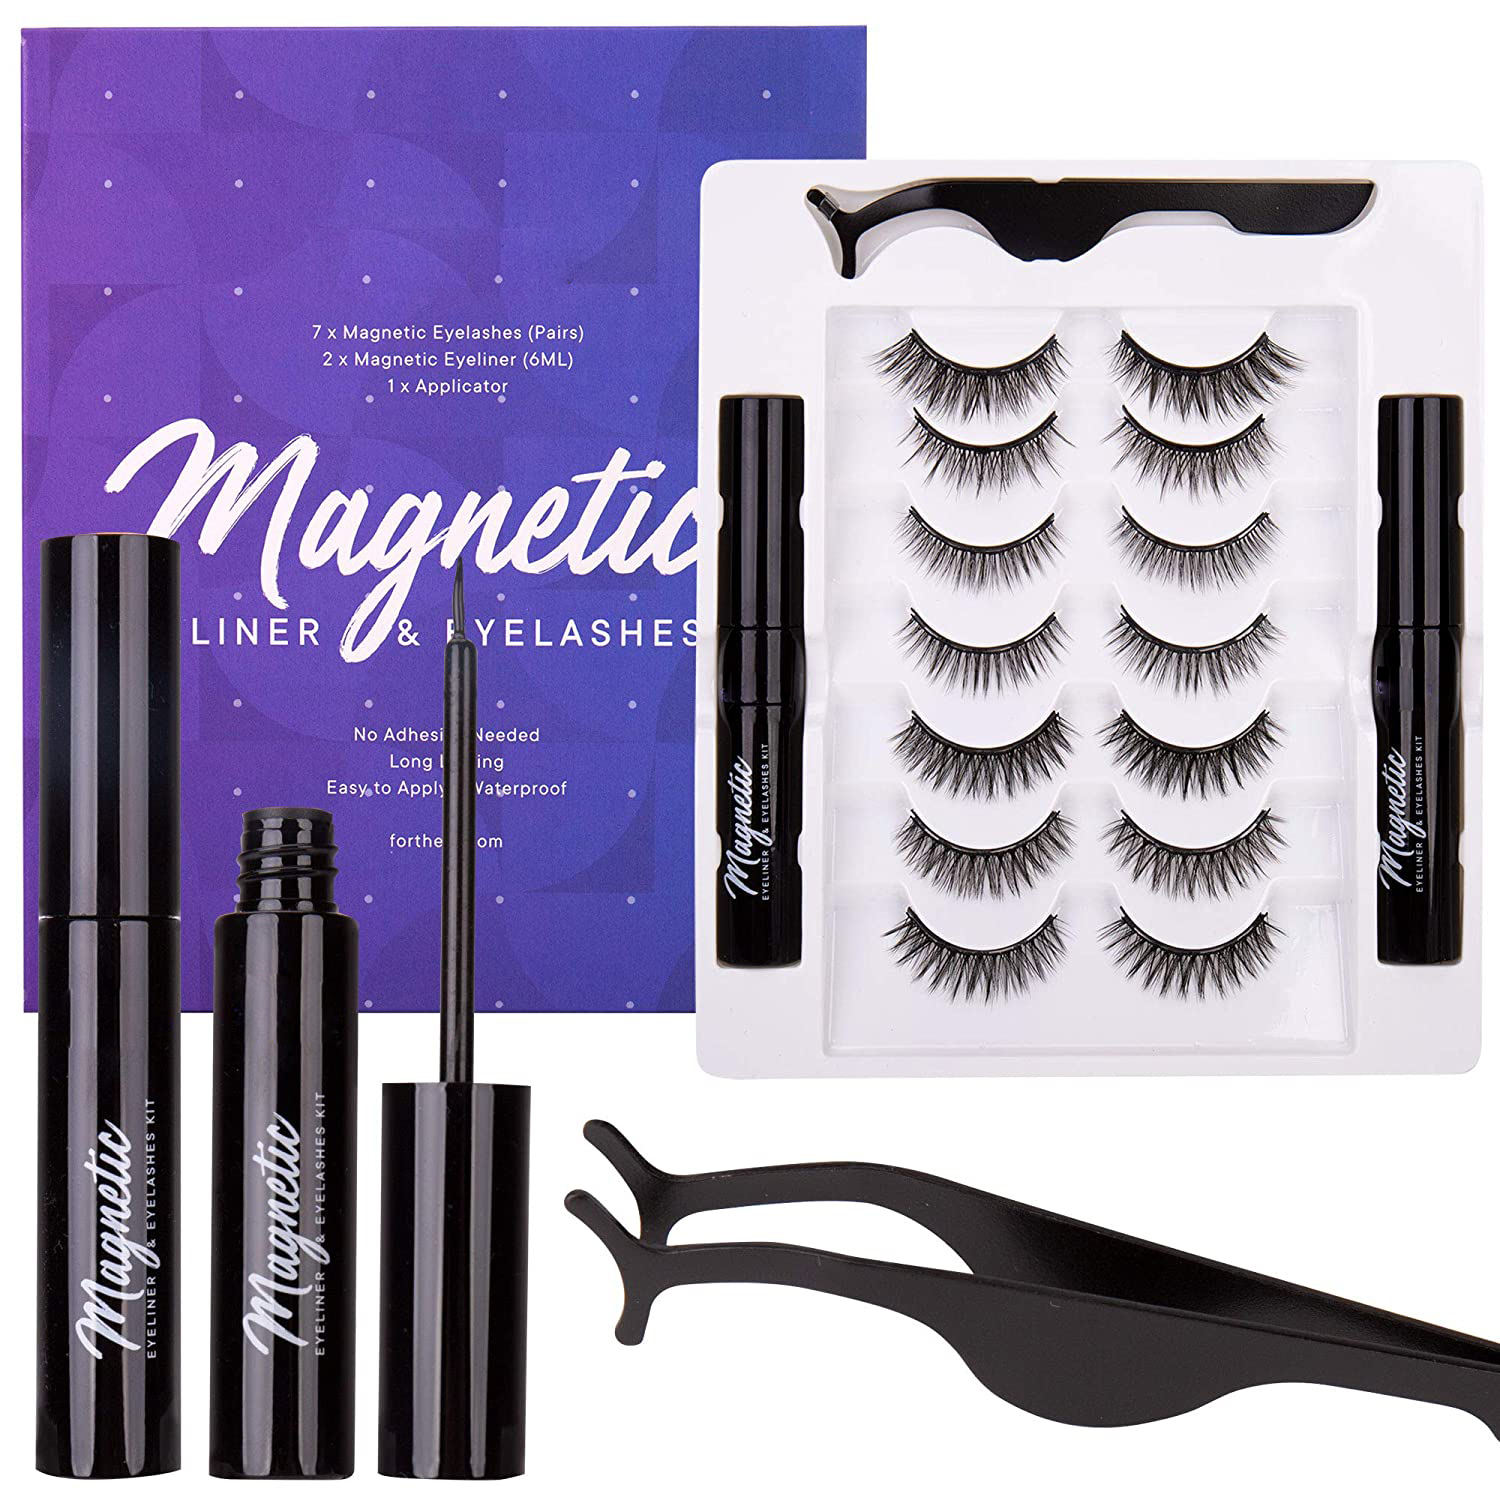 2020 newest magnetic eyelashes and eyeliner with tweezers false eyelashes 3d mink eye lash kit